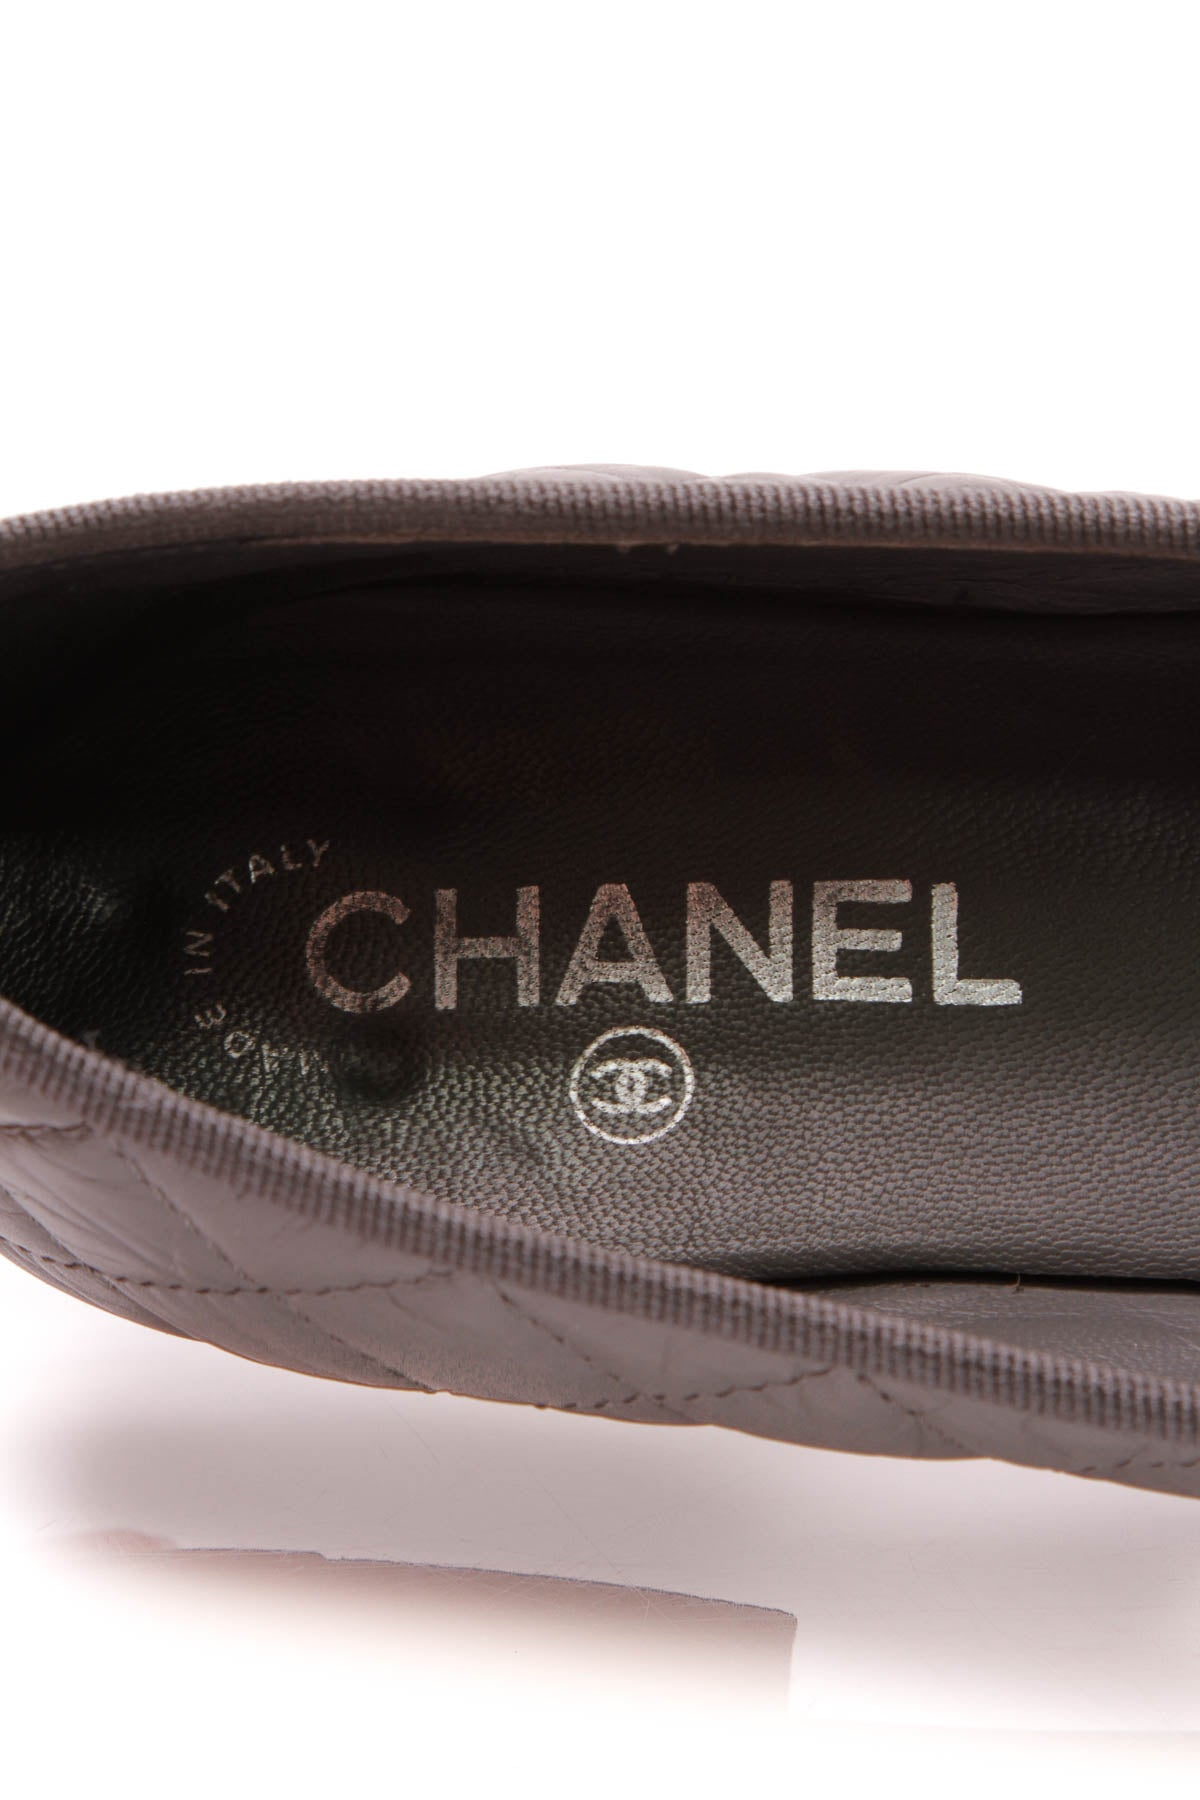 14cd1e53ef95 Shop Chanel Bag, Wallets and Accessories - Couture USA